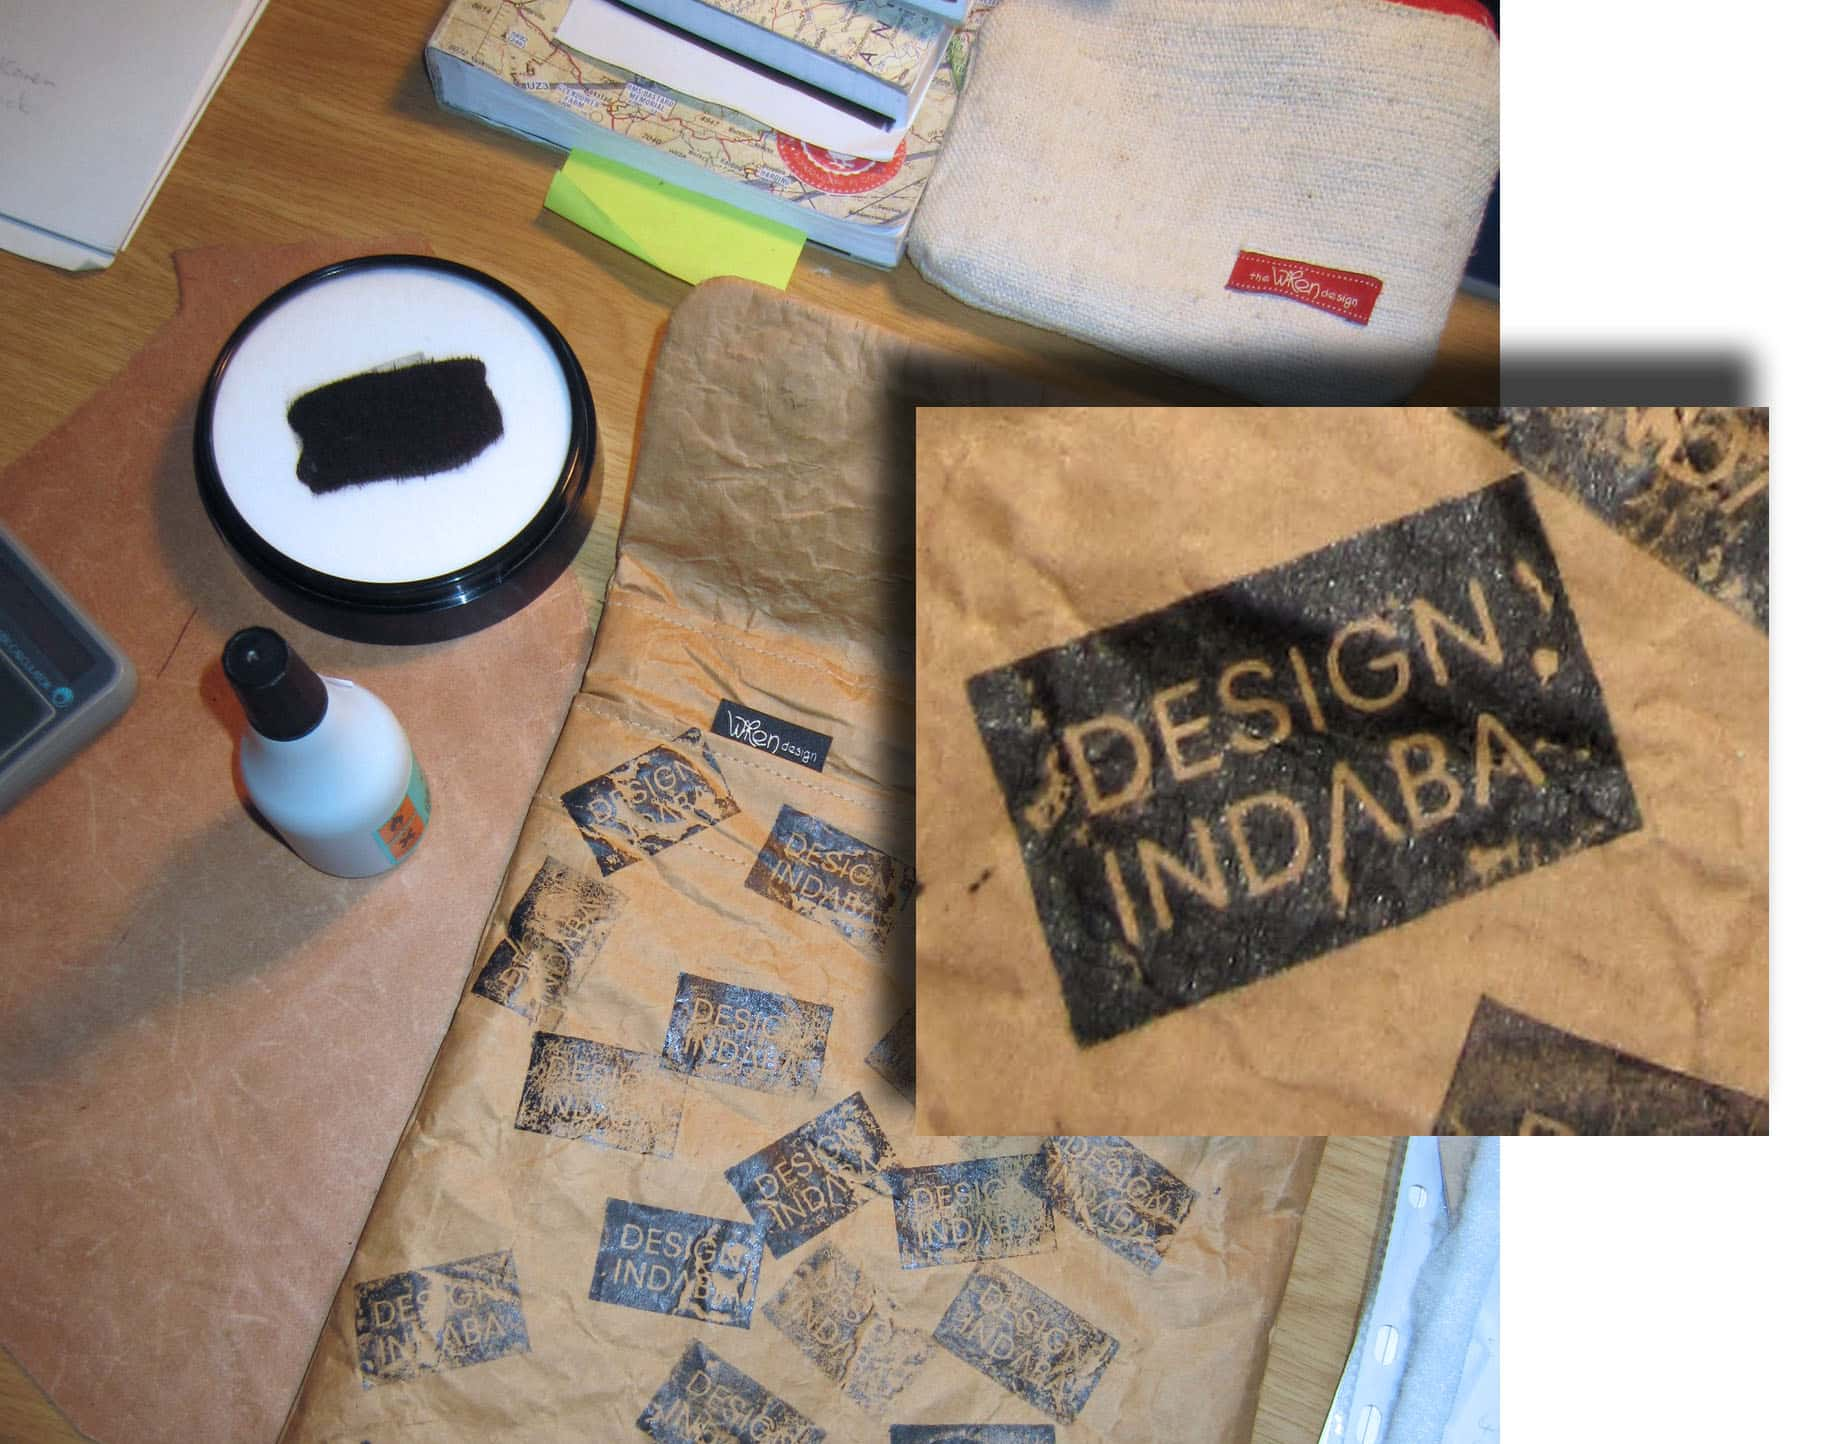 Design Indaba - working with permanent ink